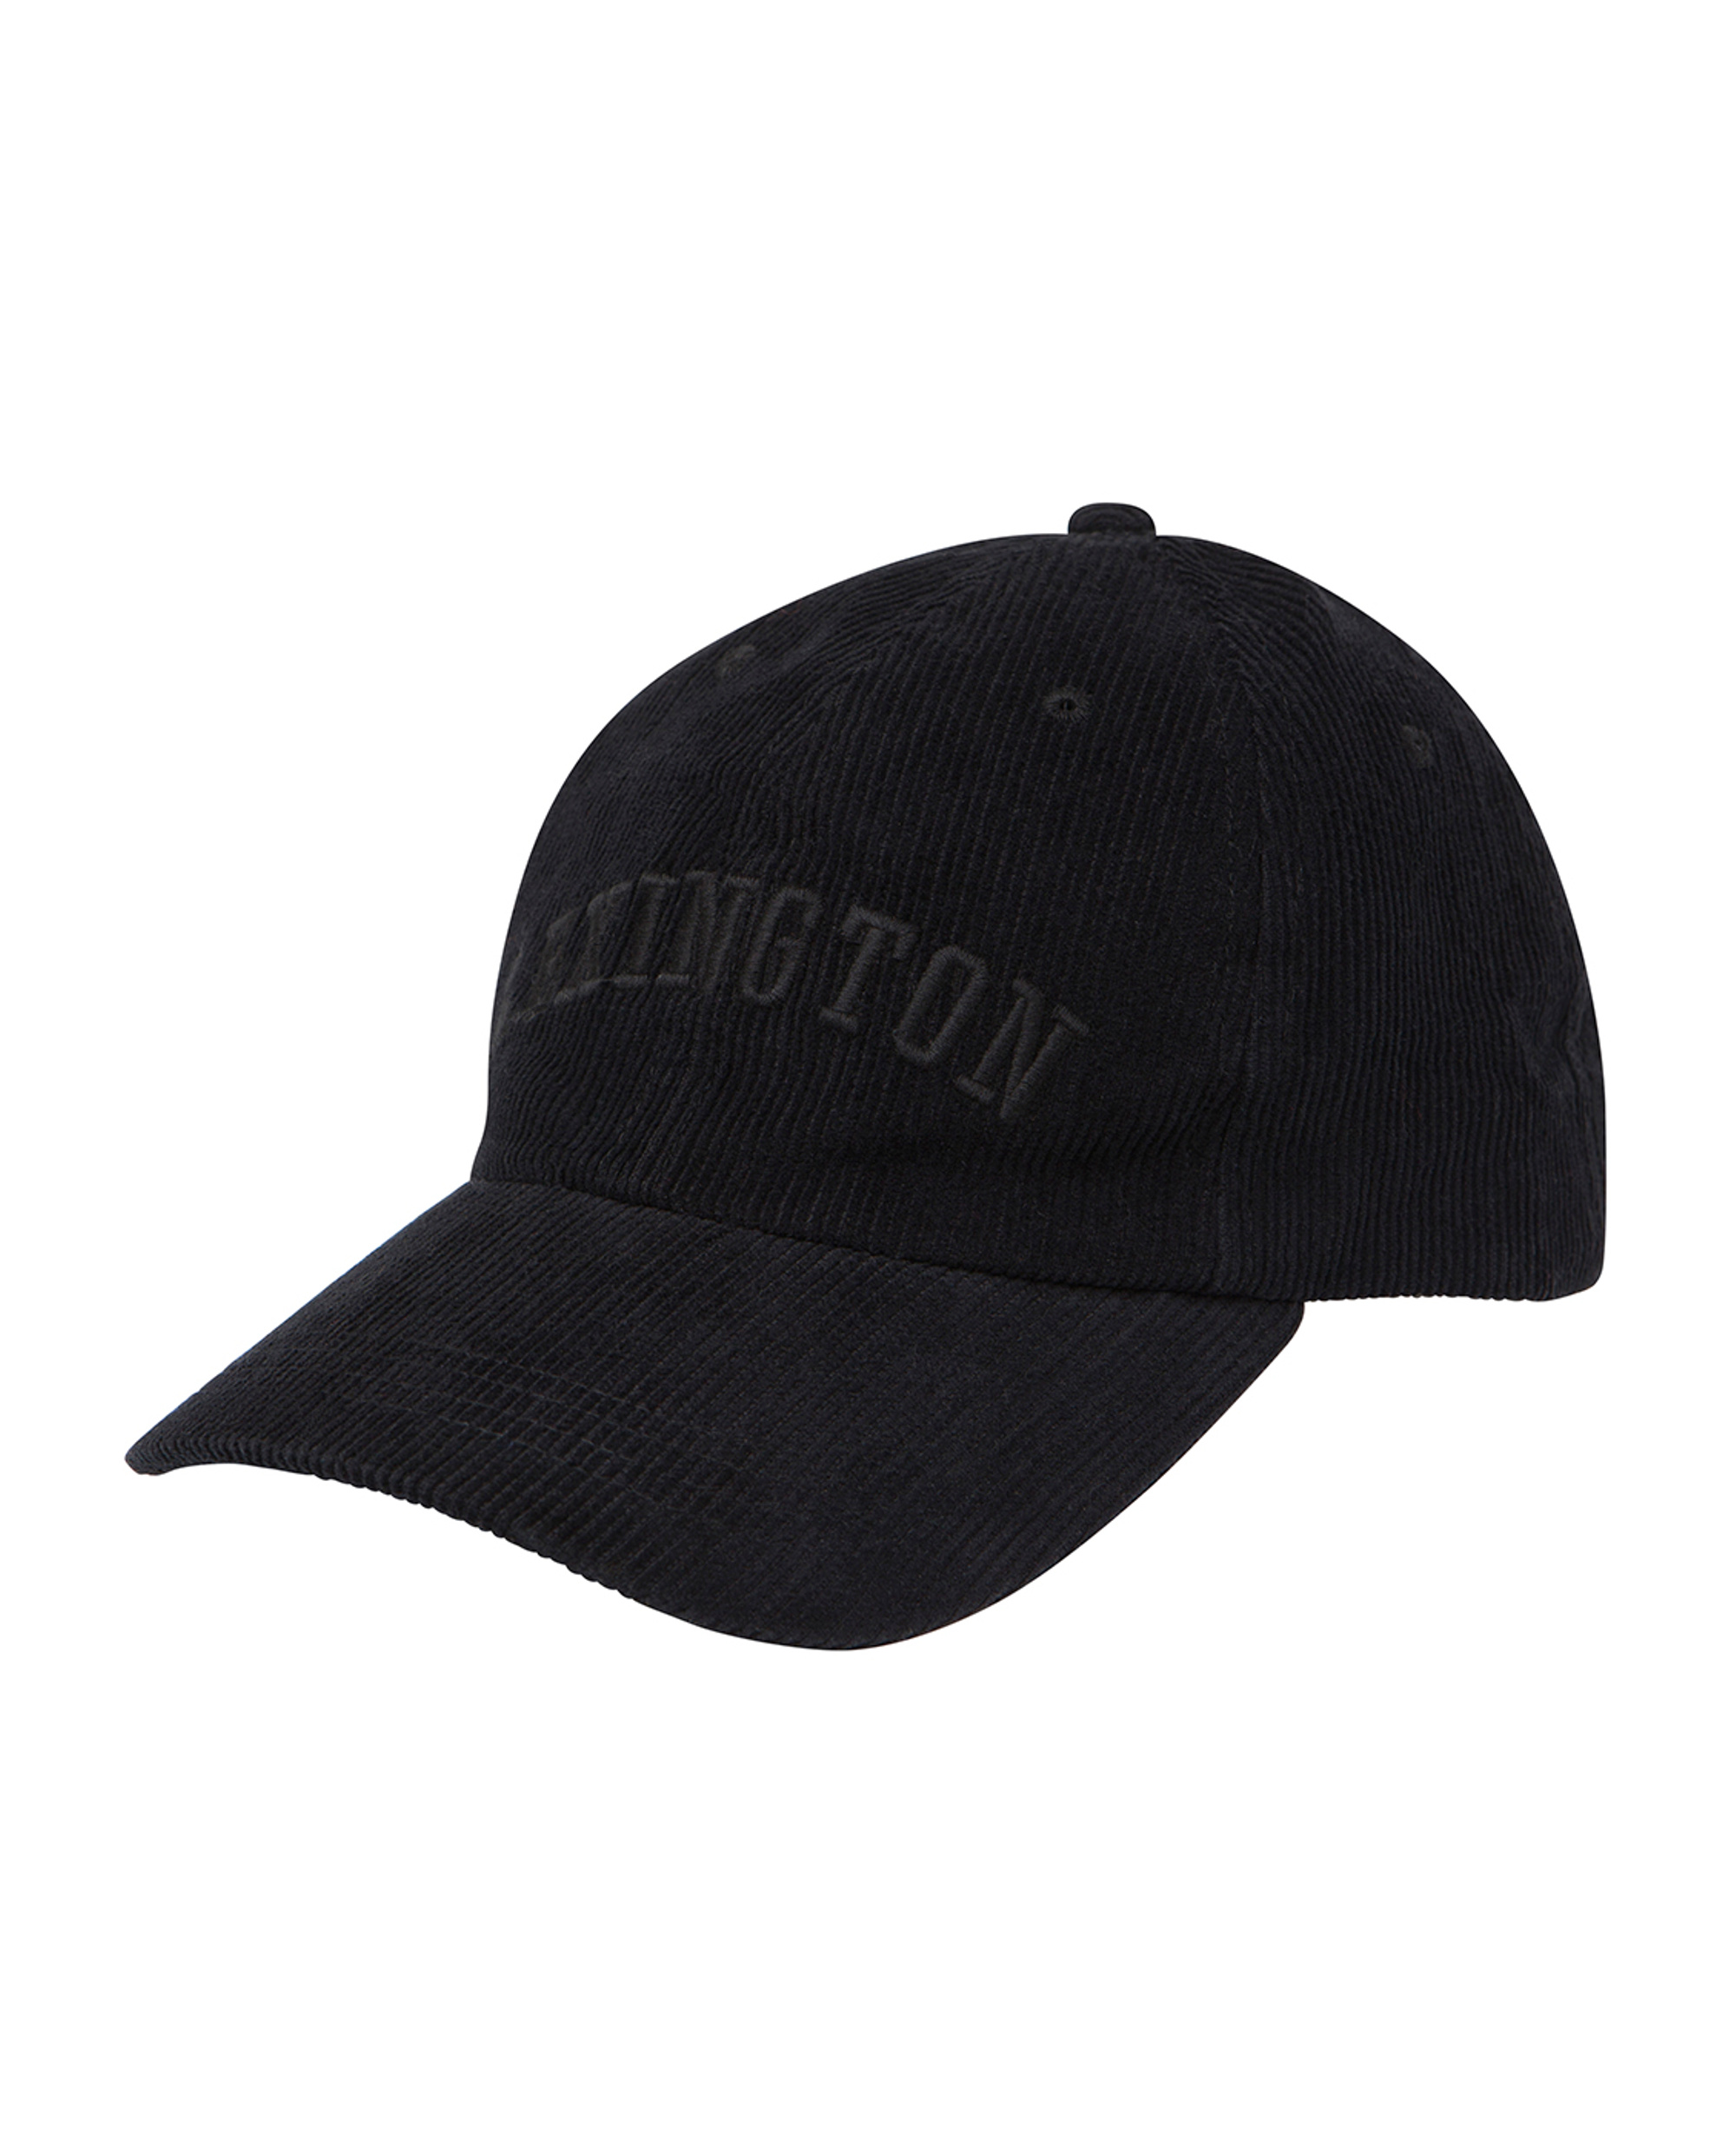 Houston Cord Cap, Caviar Black